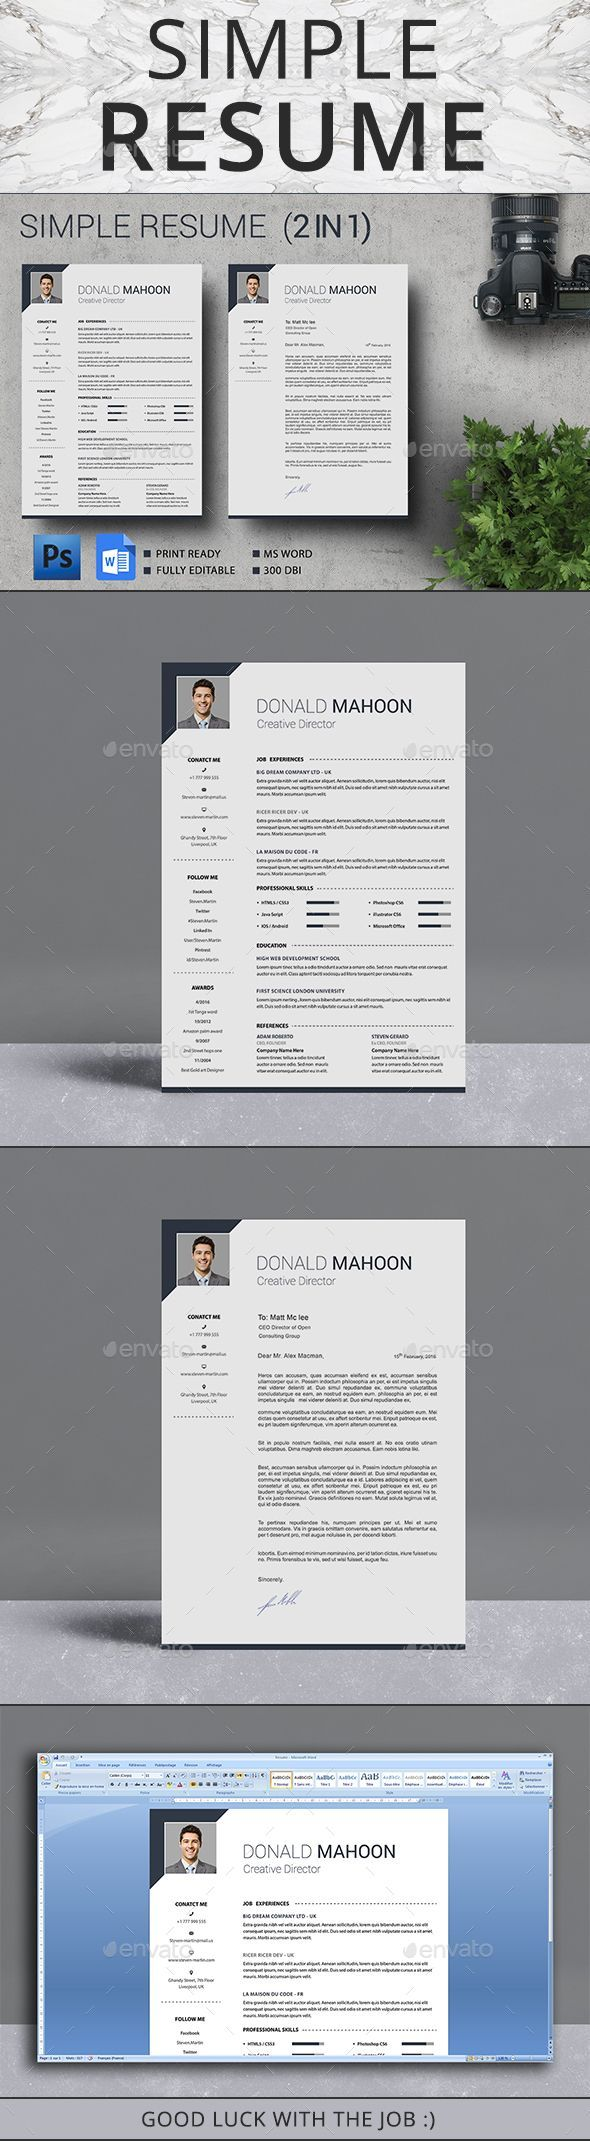 Resume by logotex Resume is the super